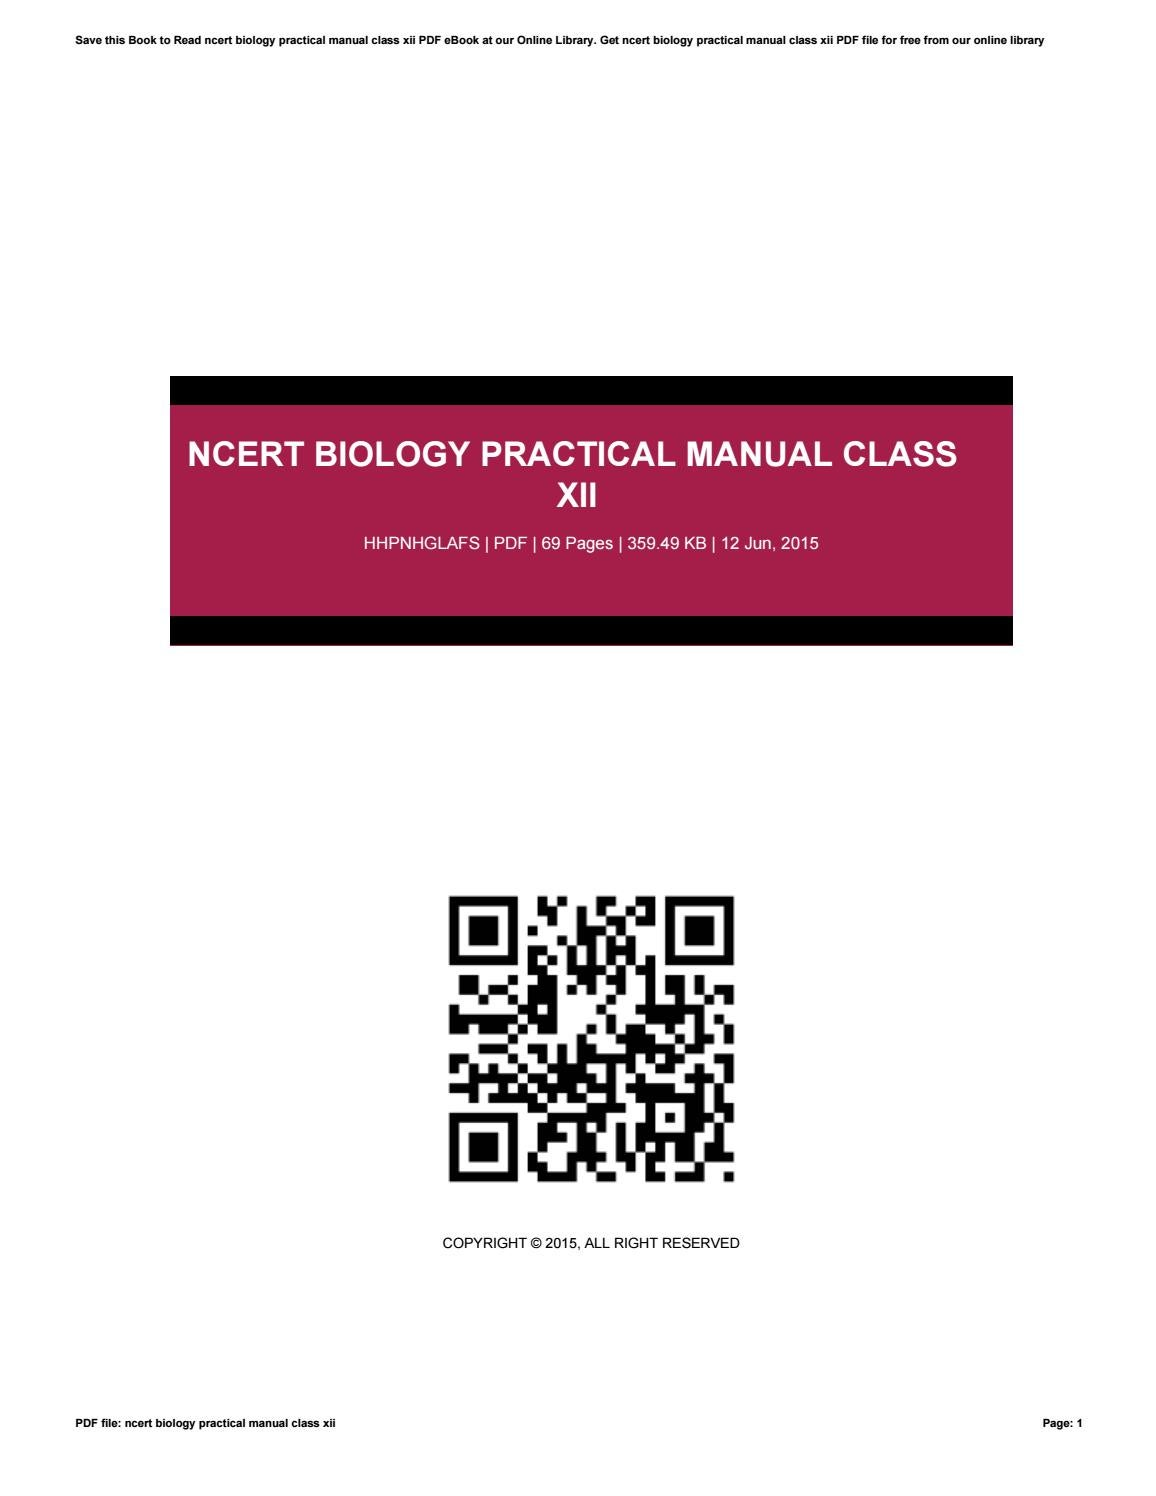 Ncert biology practical manual class xii by Delma - issuu